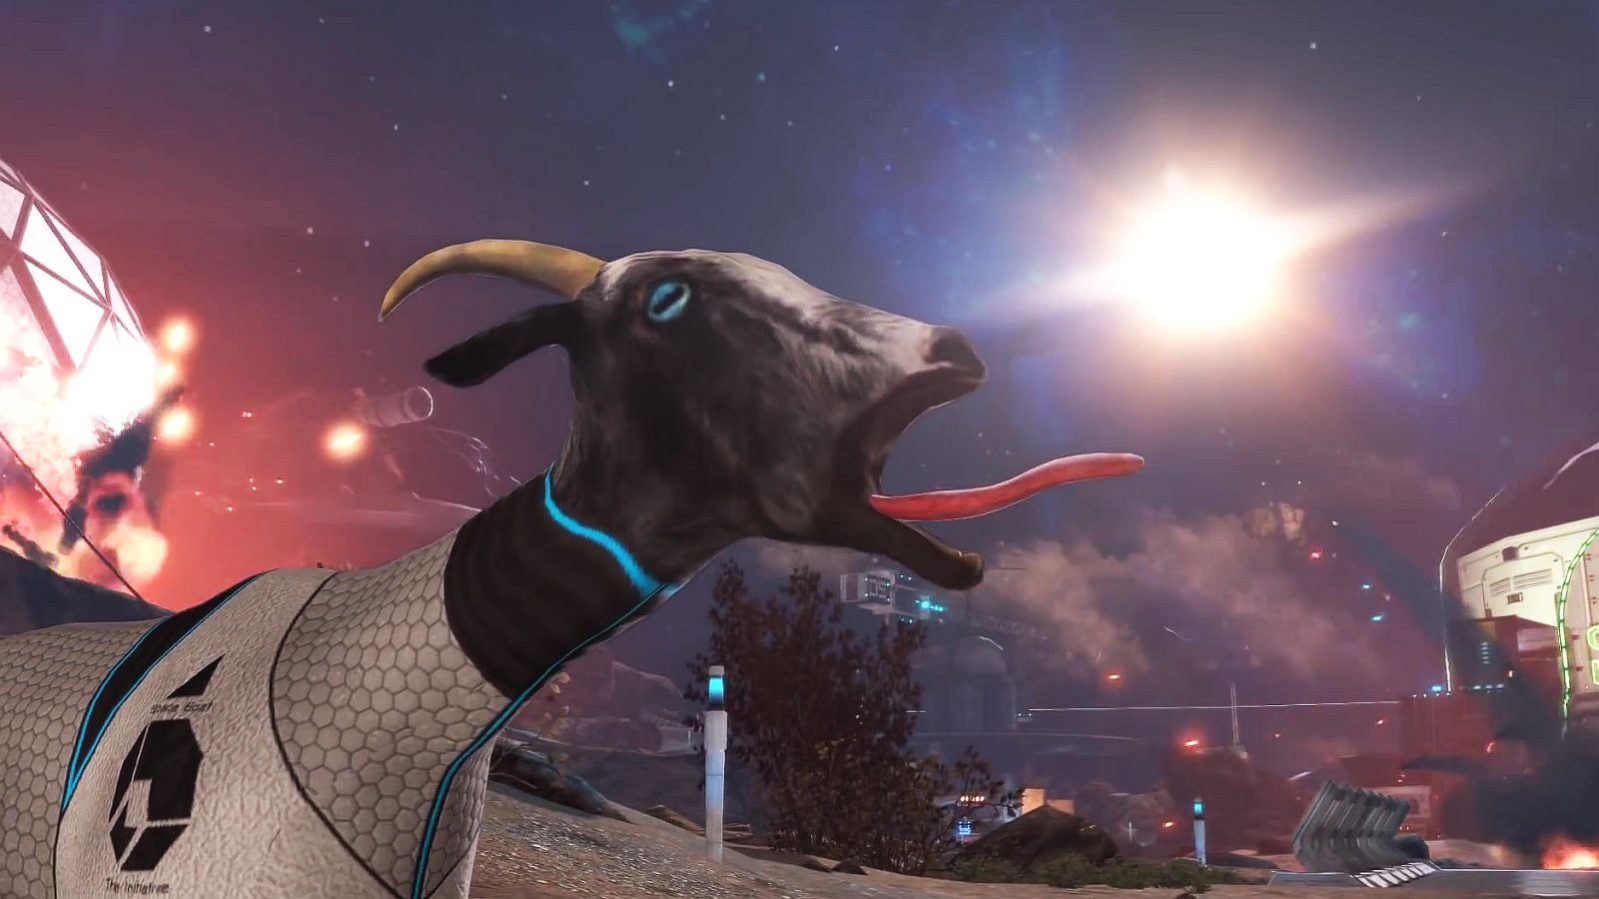 You need more Goat Simulator in your life: MMO, Space & GoatZ now $1